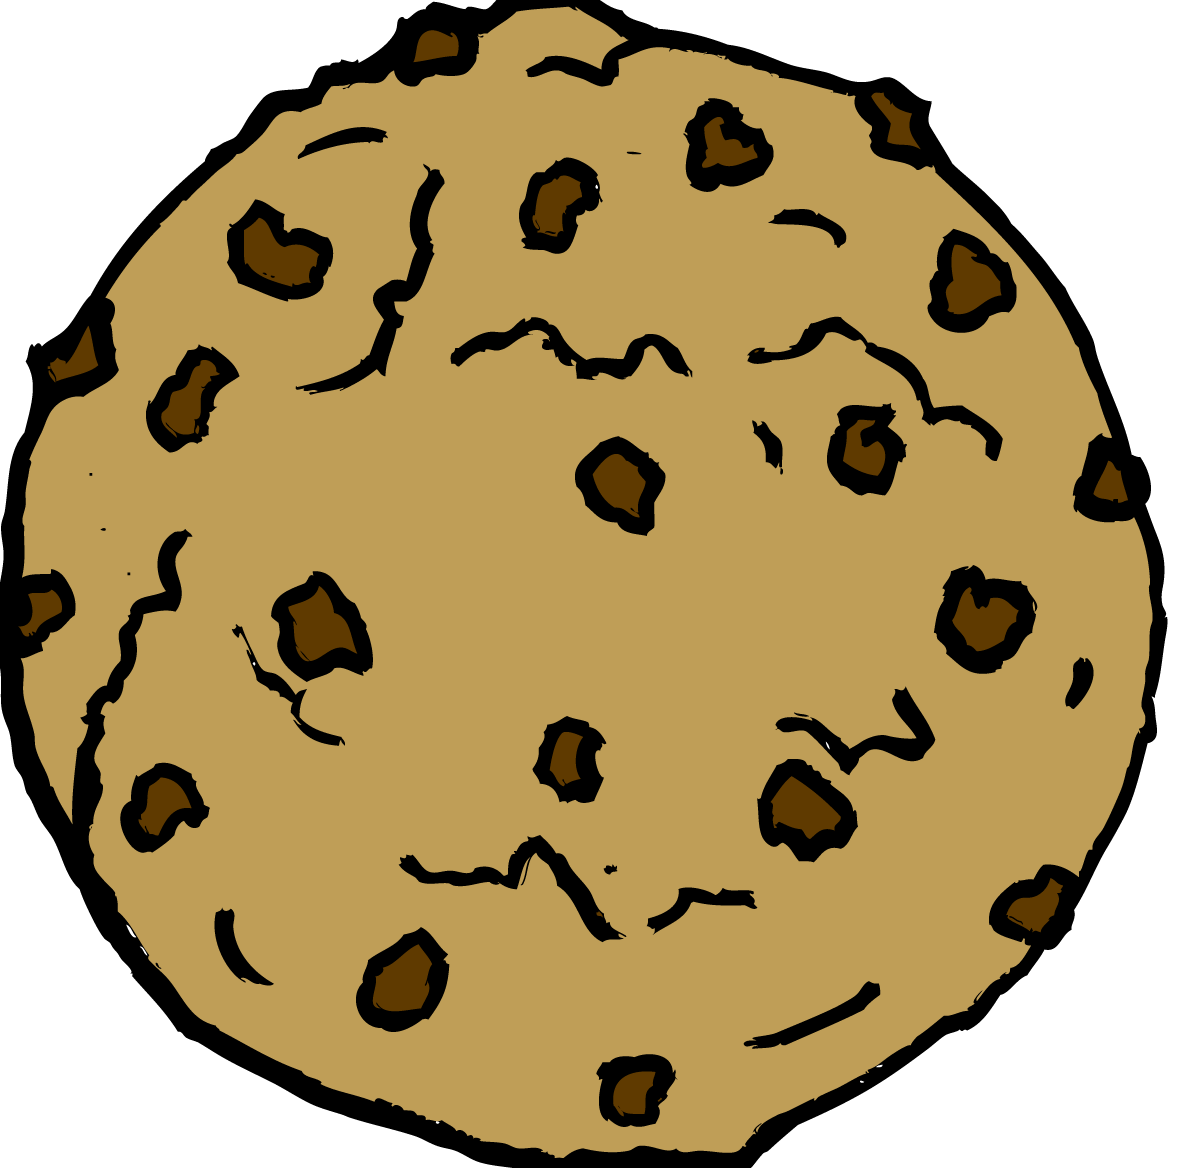 Chocolate Chip Cookie Clipart 2-Chocolate chip cookie clipart 2-3